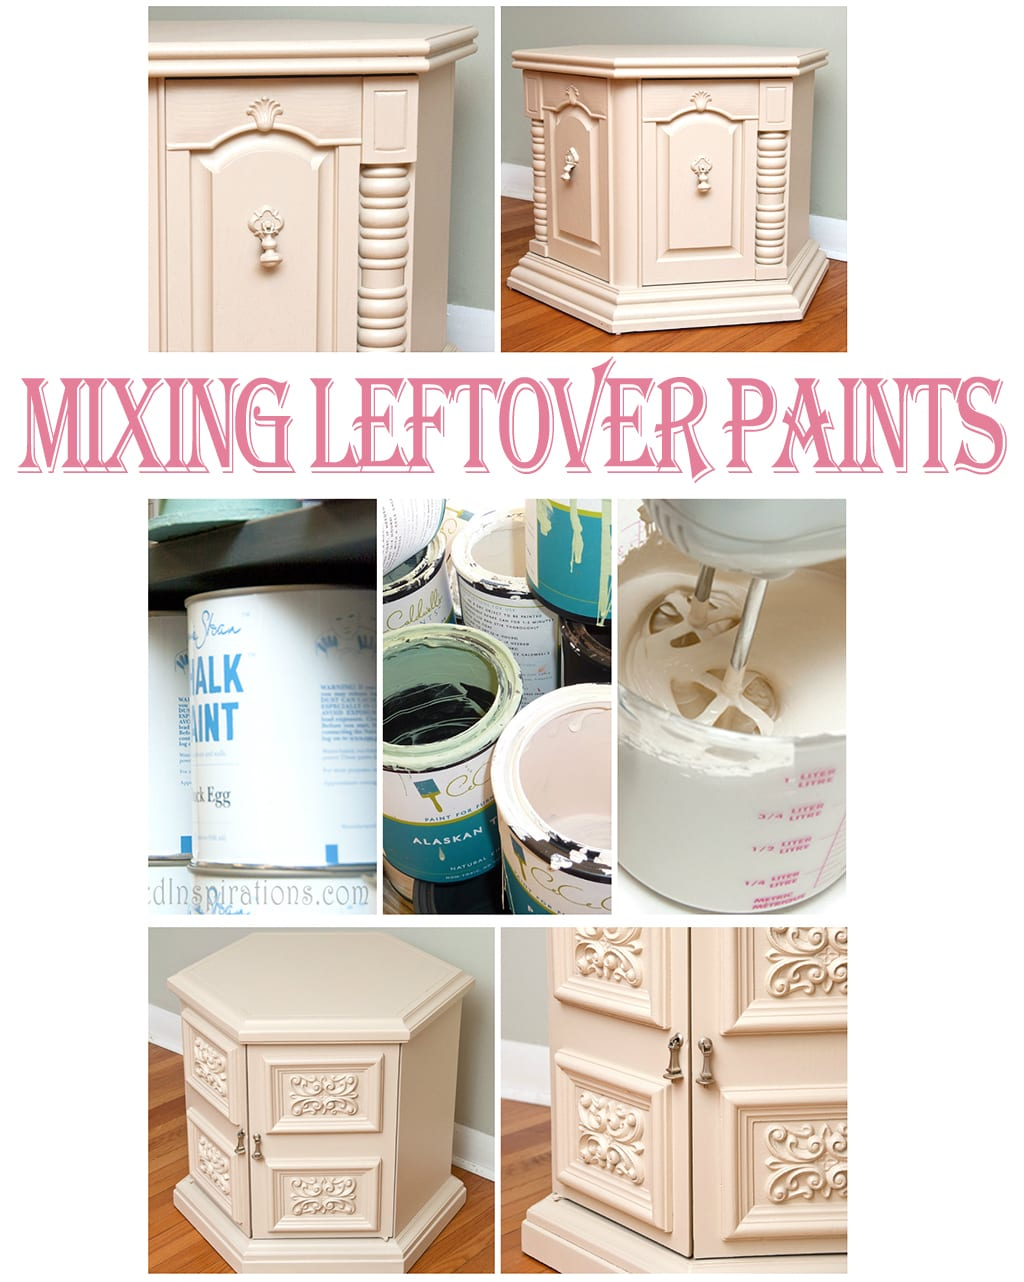 Mixing Leftover Paints & Creating Custom Colors For Small Projects